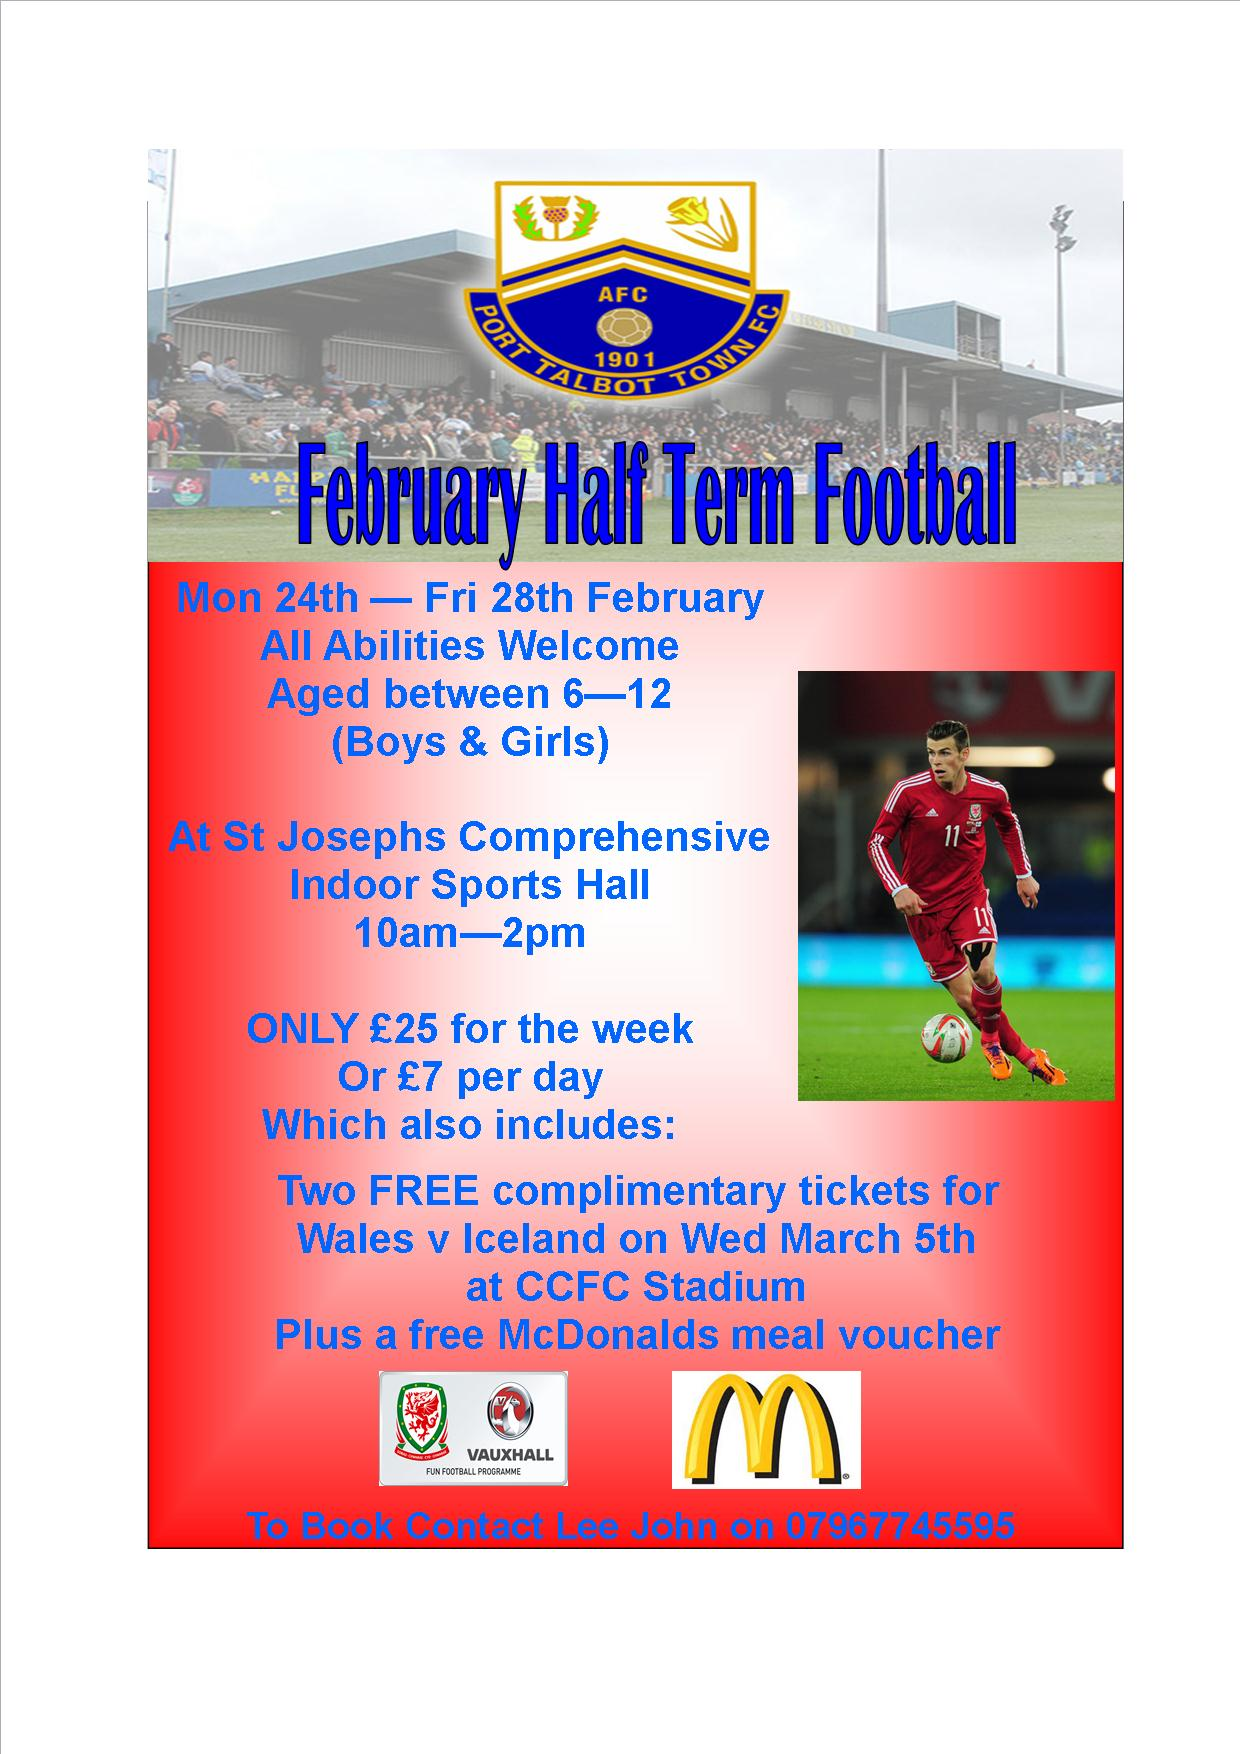 Half Term Soccer Fun in Port Talbot